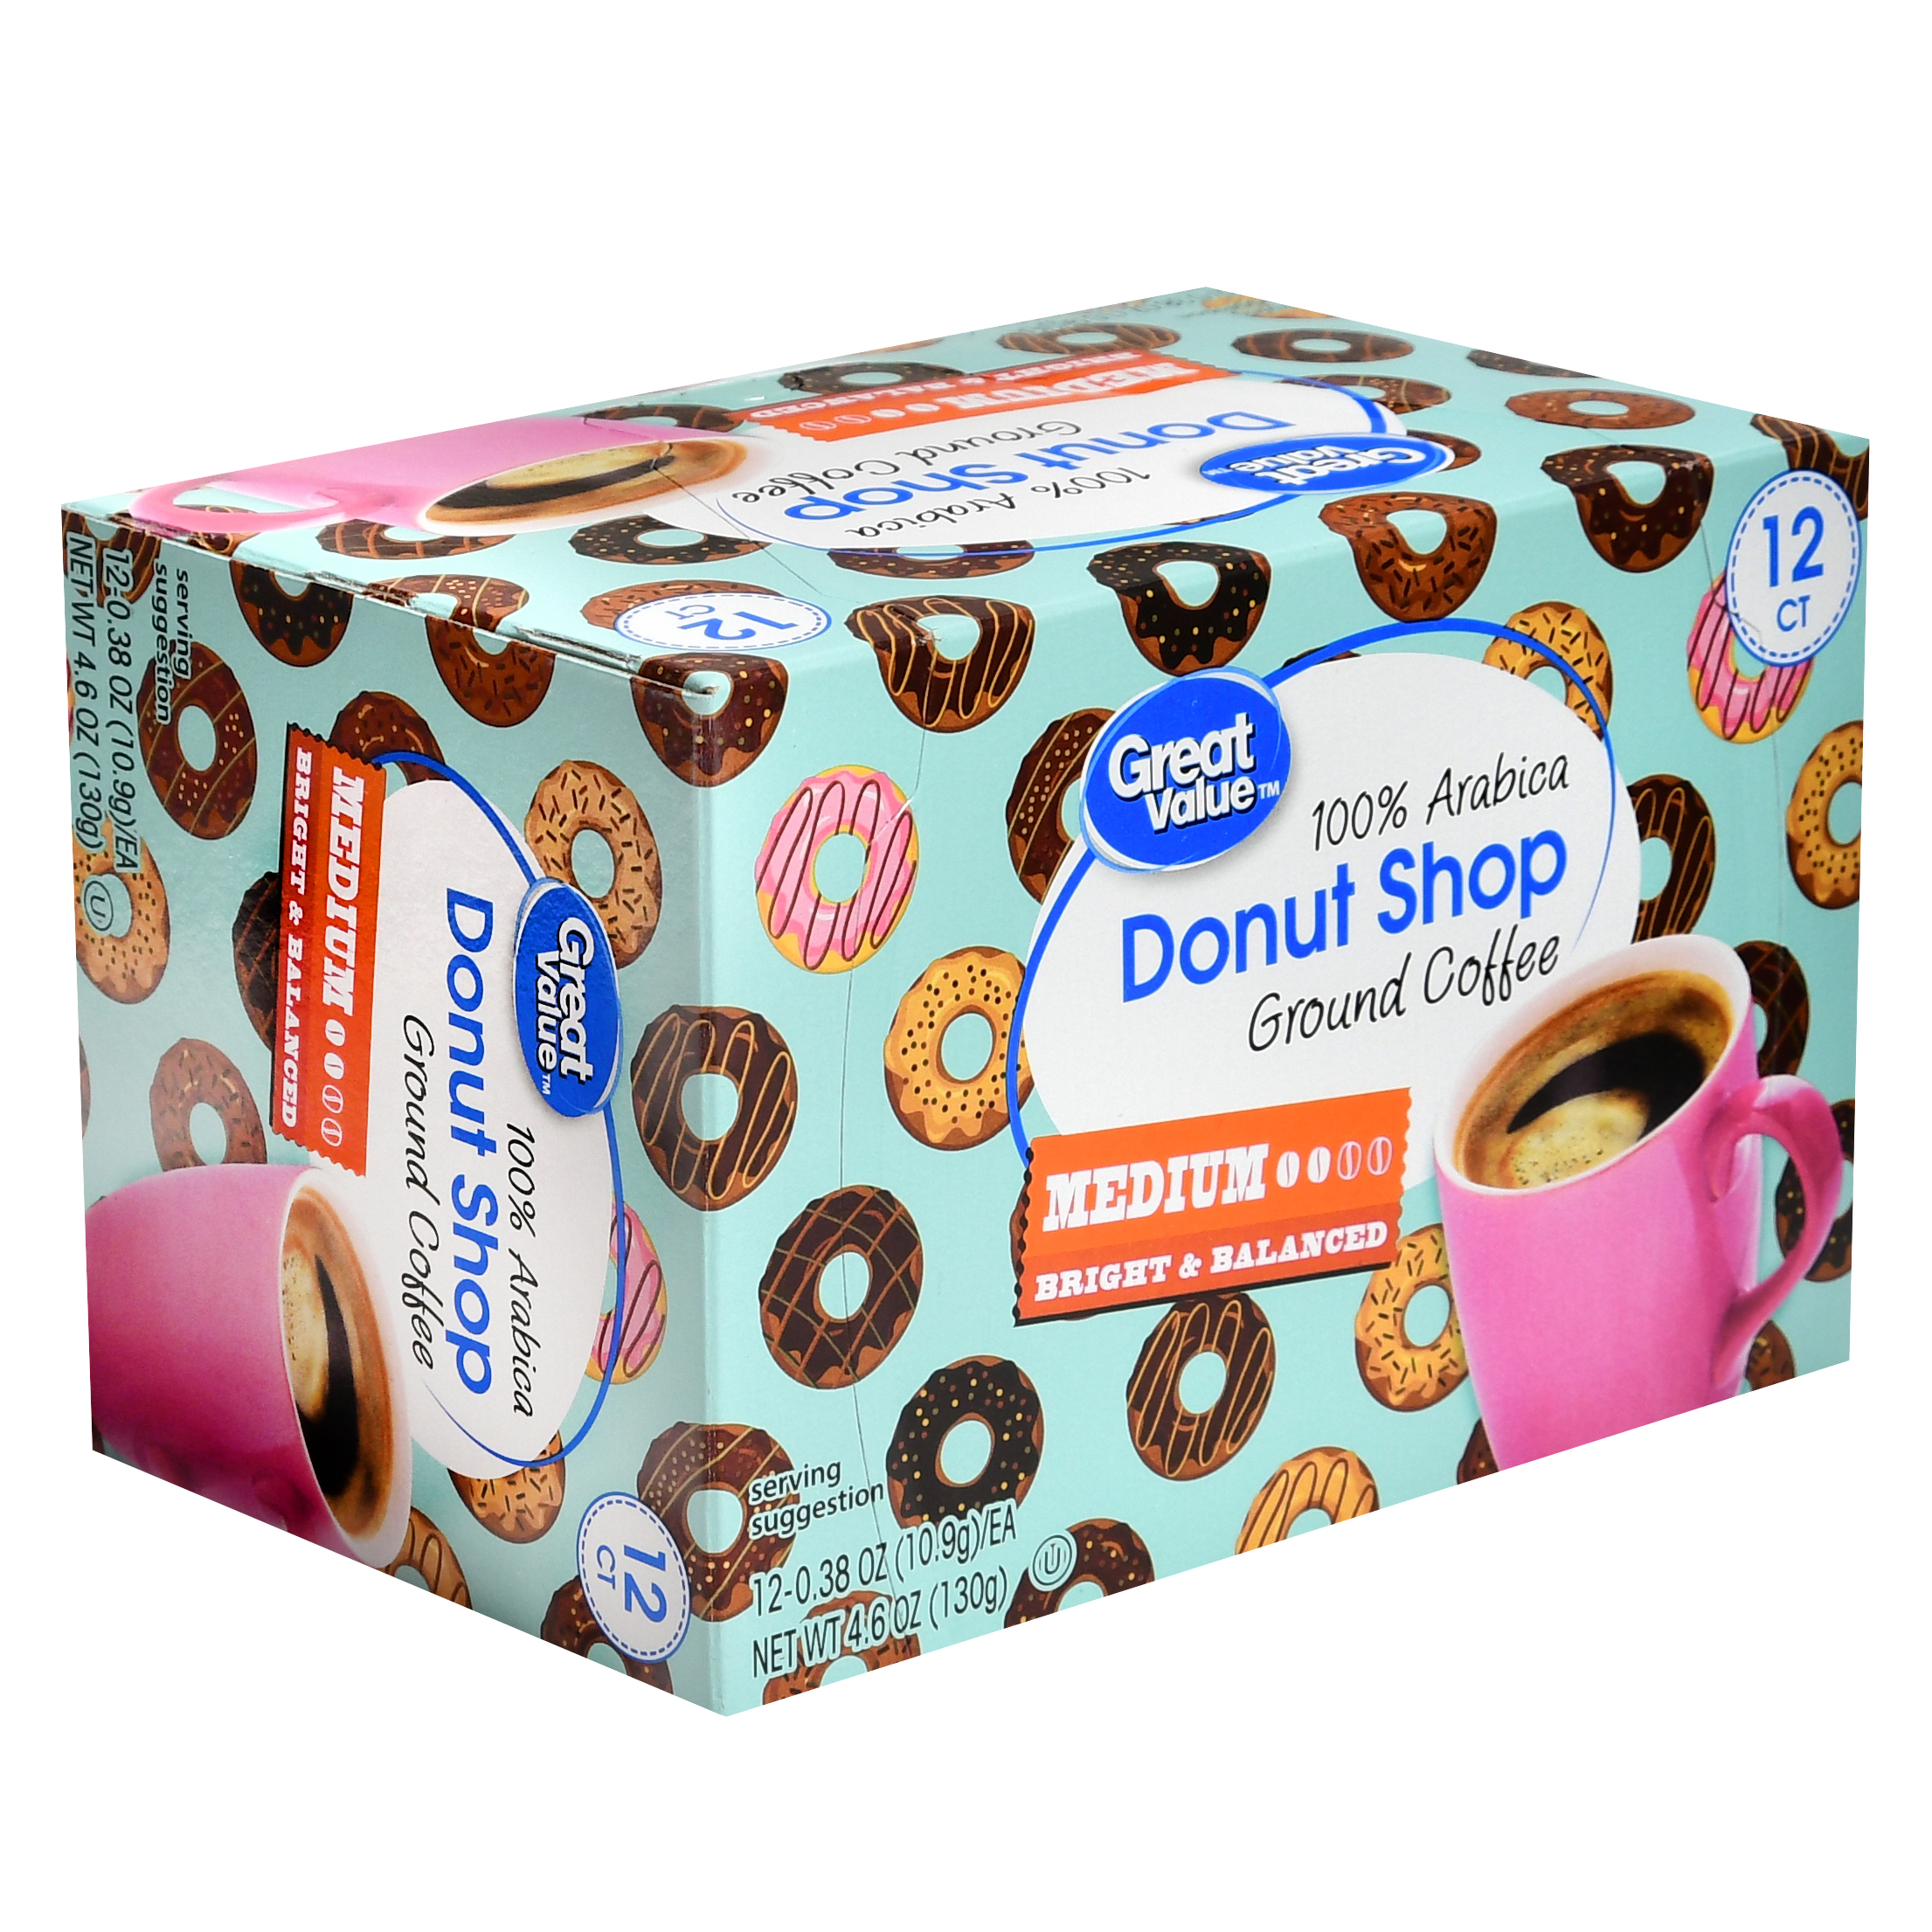 Great Value Donut Shop Ground Coffee Single Serve Cups, Medium Roast, 12 Count